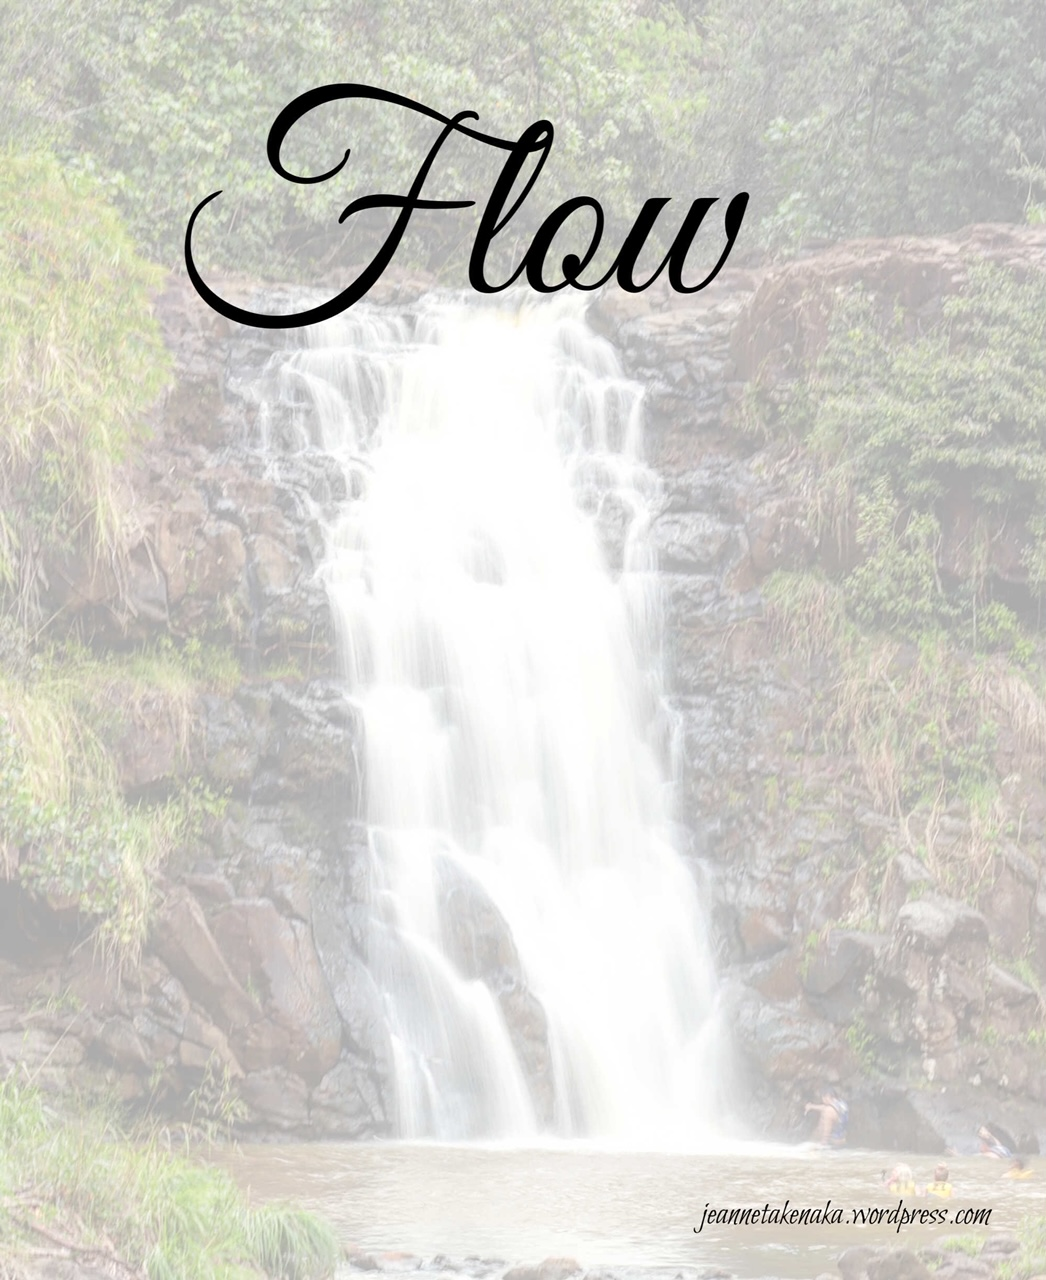 A meme with a waterfall and the word Flow at the top of the image